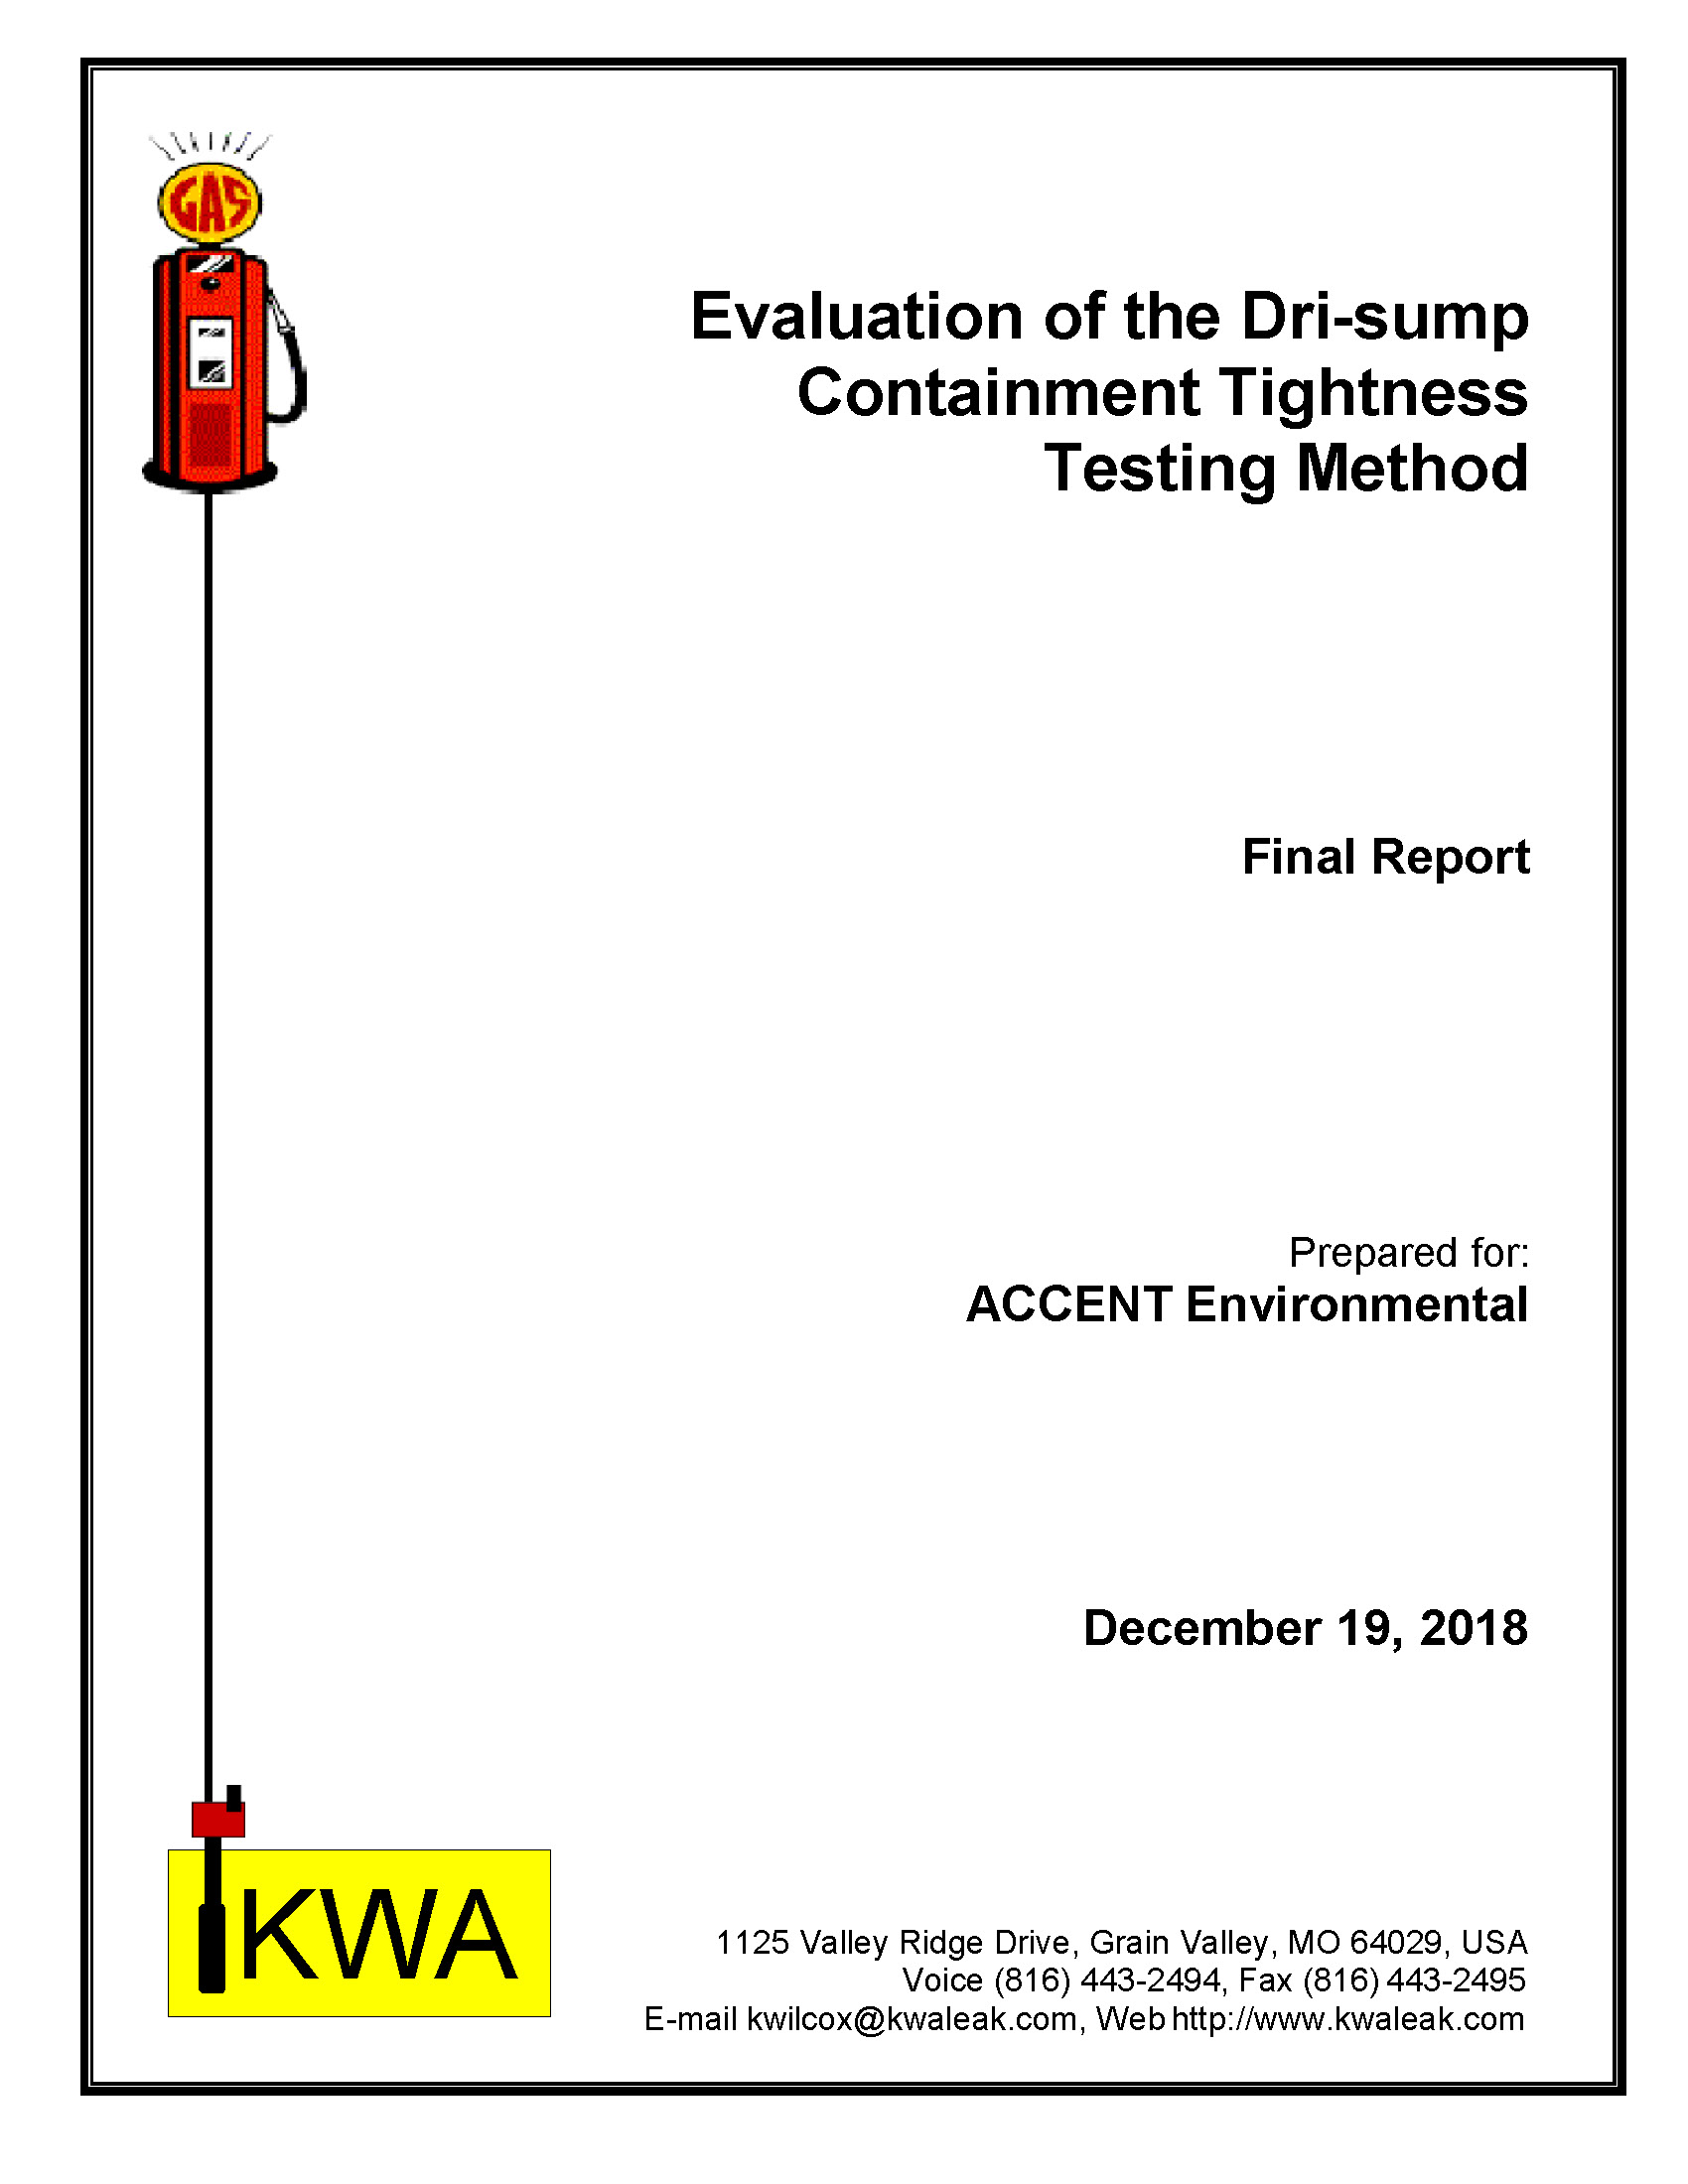 KWA Final Report Dri Sump 12 19 2018_Page_01.jpg